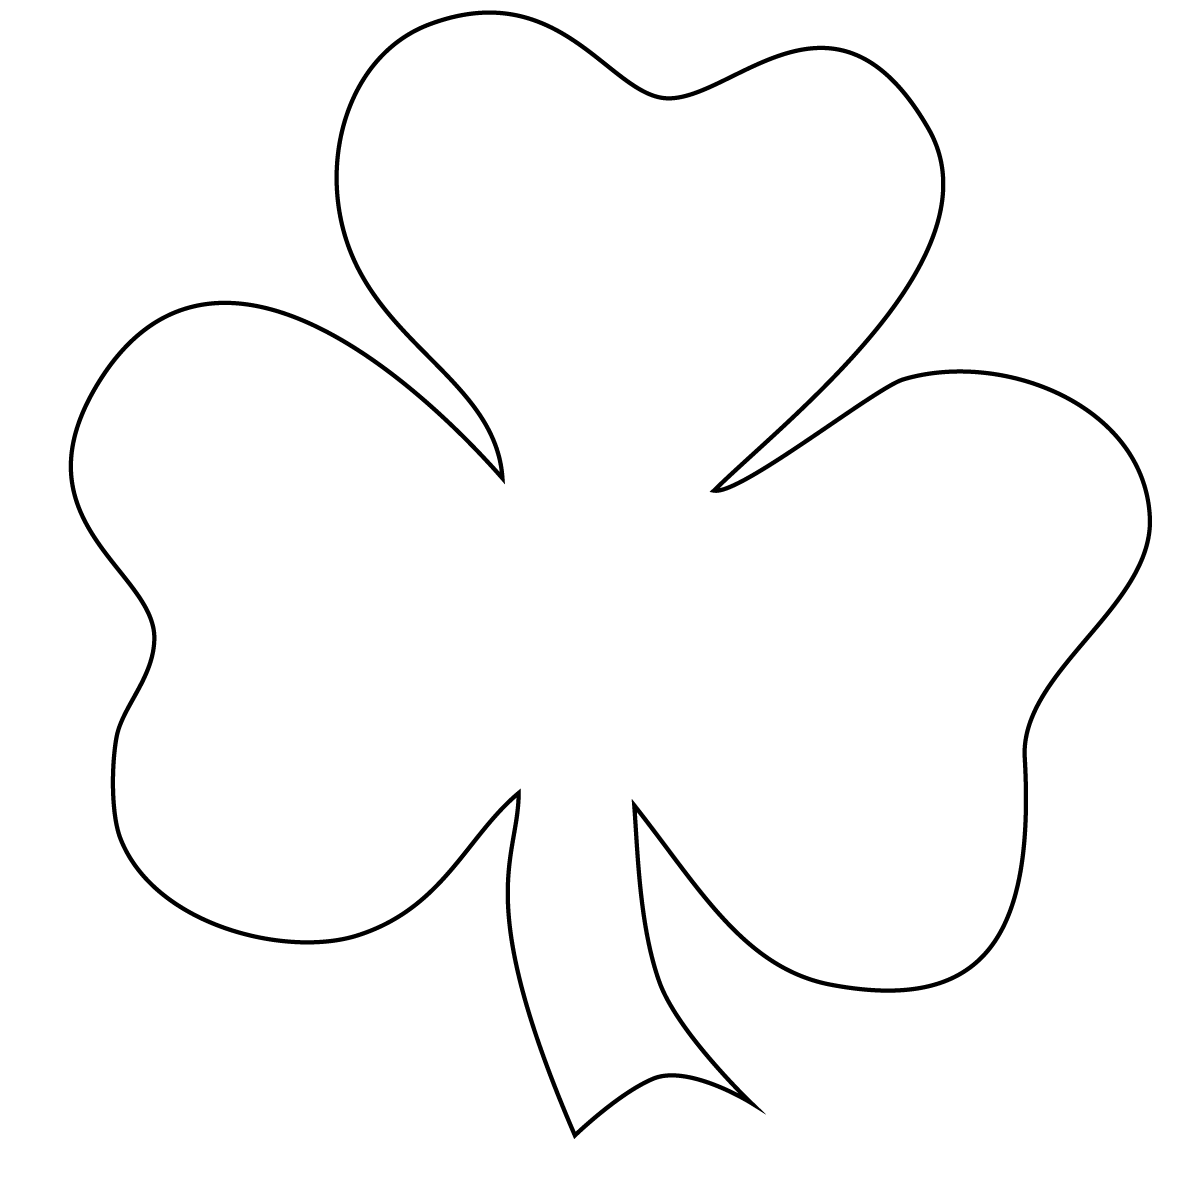 Simplicity image for printable shamrocks templates